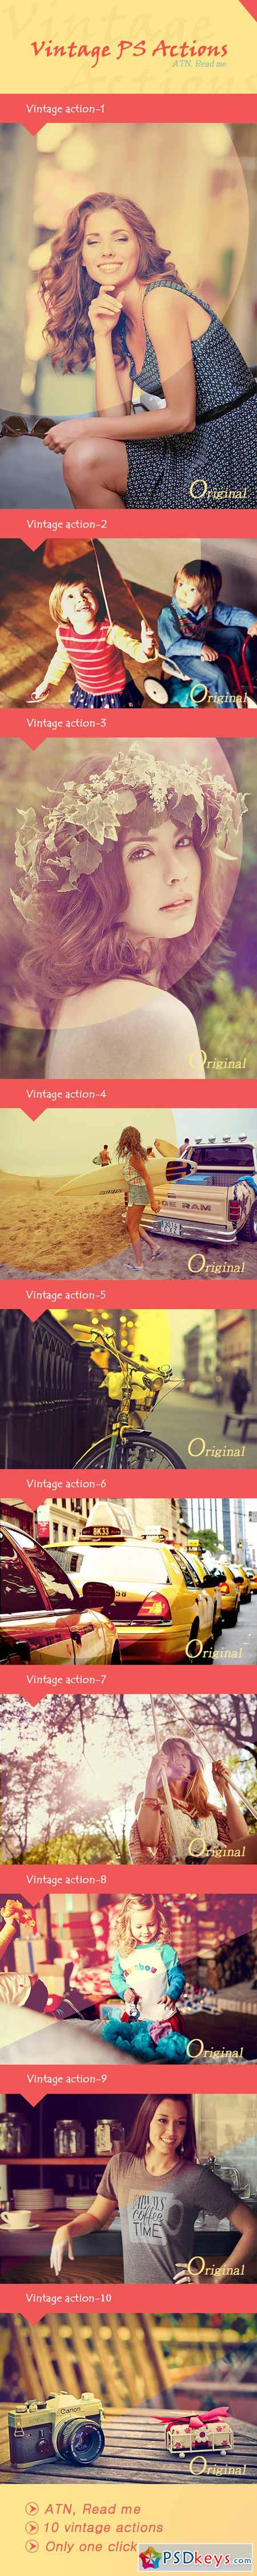 Vintage PS Actions 10 9784259